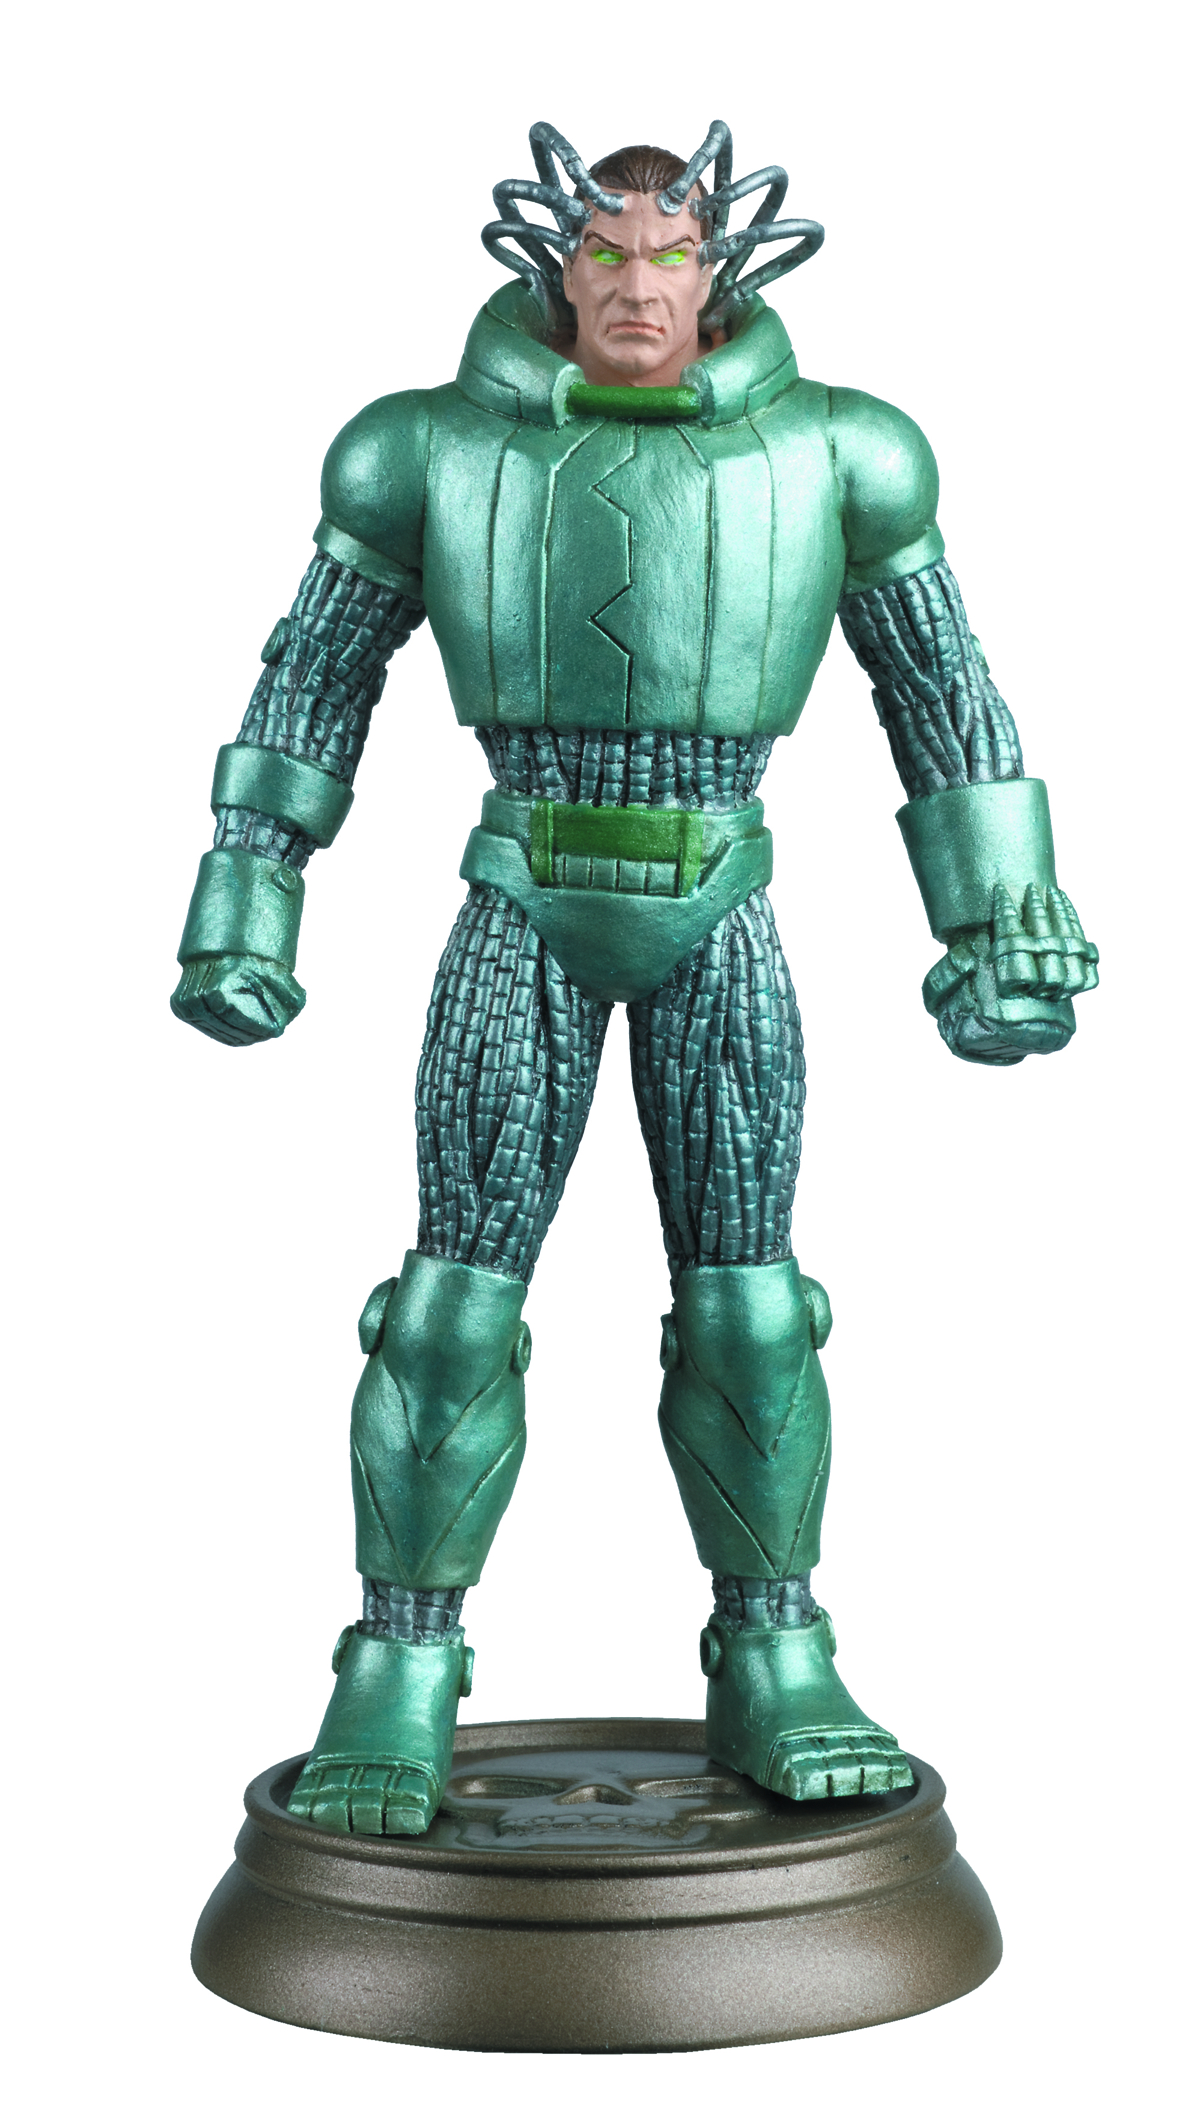 DC SUPERHERO CHESS FIG COLL MAG #92 METALLO BLACK PAWN